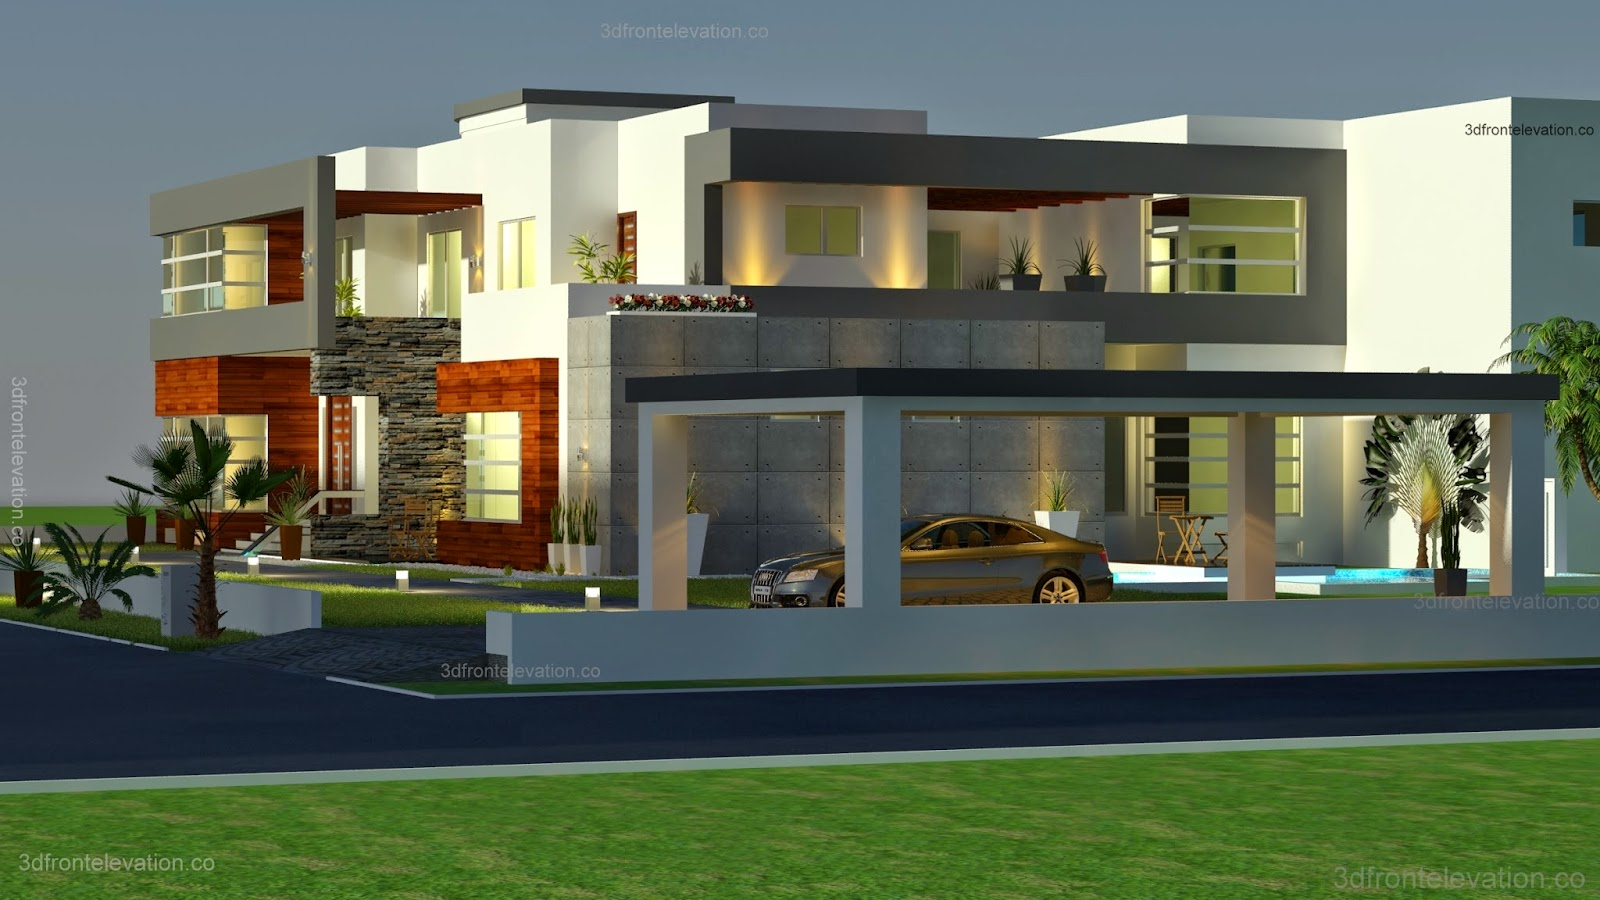 3D Front Elevation.com: 500 Square Meter Modern